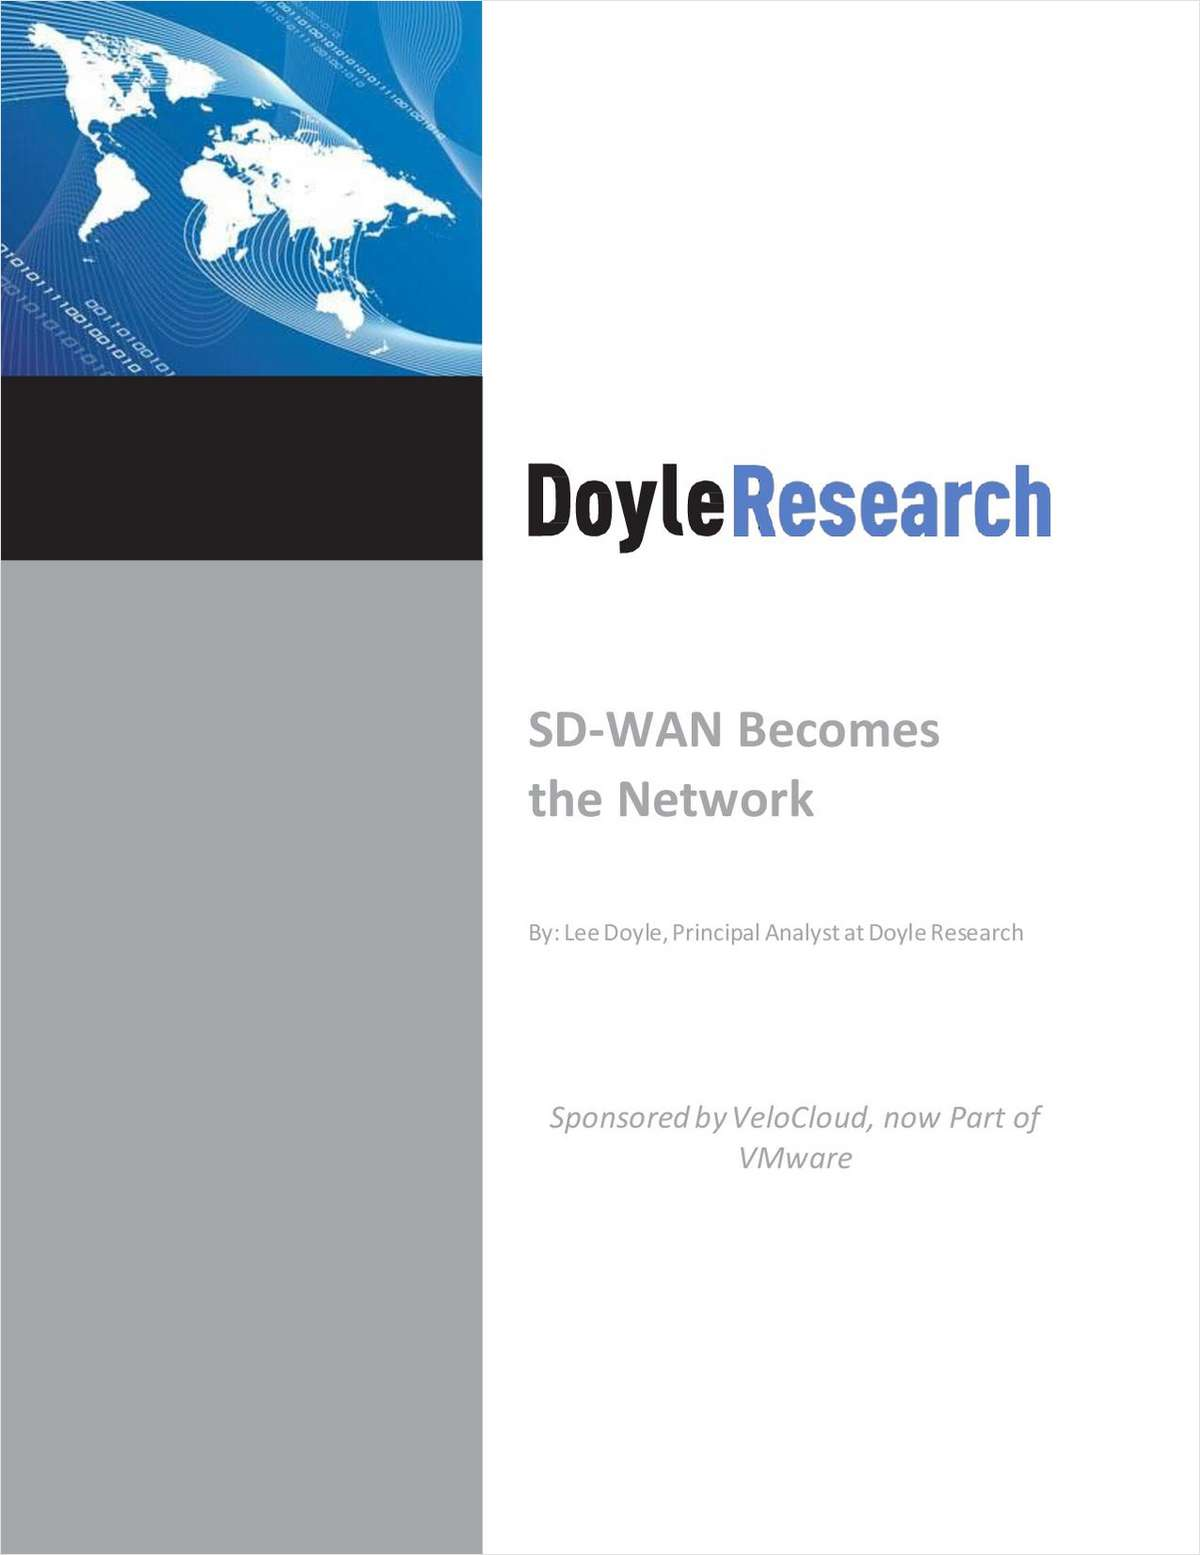 SD-WAN Becomes the Network Free White Paper